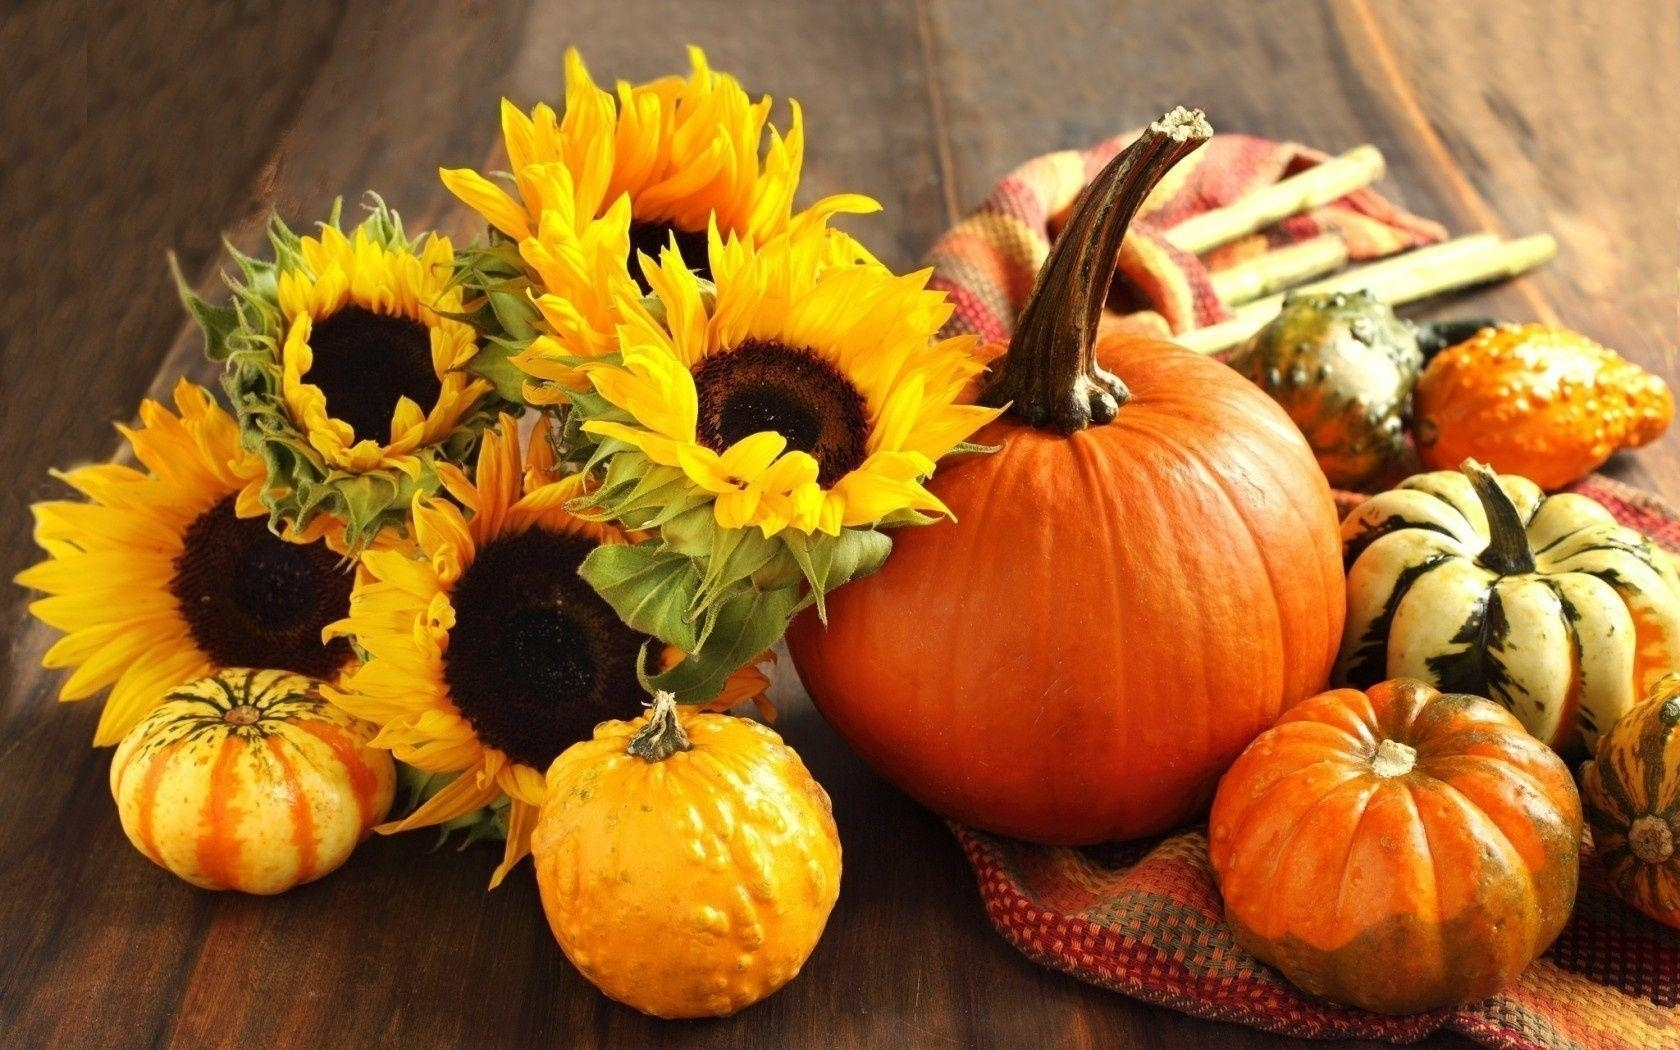 10 New Fall Wallpaper With Pumpkins FULL HD 1920×1080 For PC Background